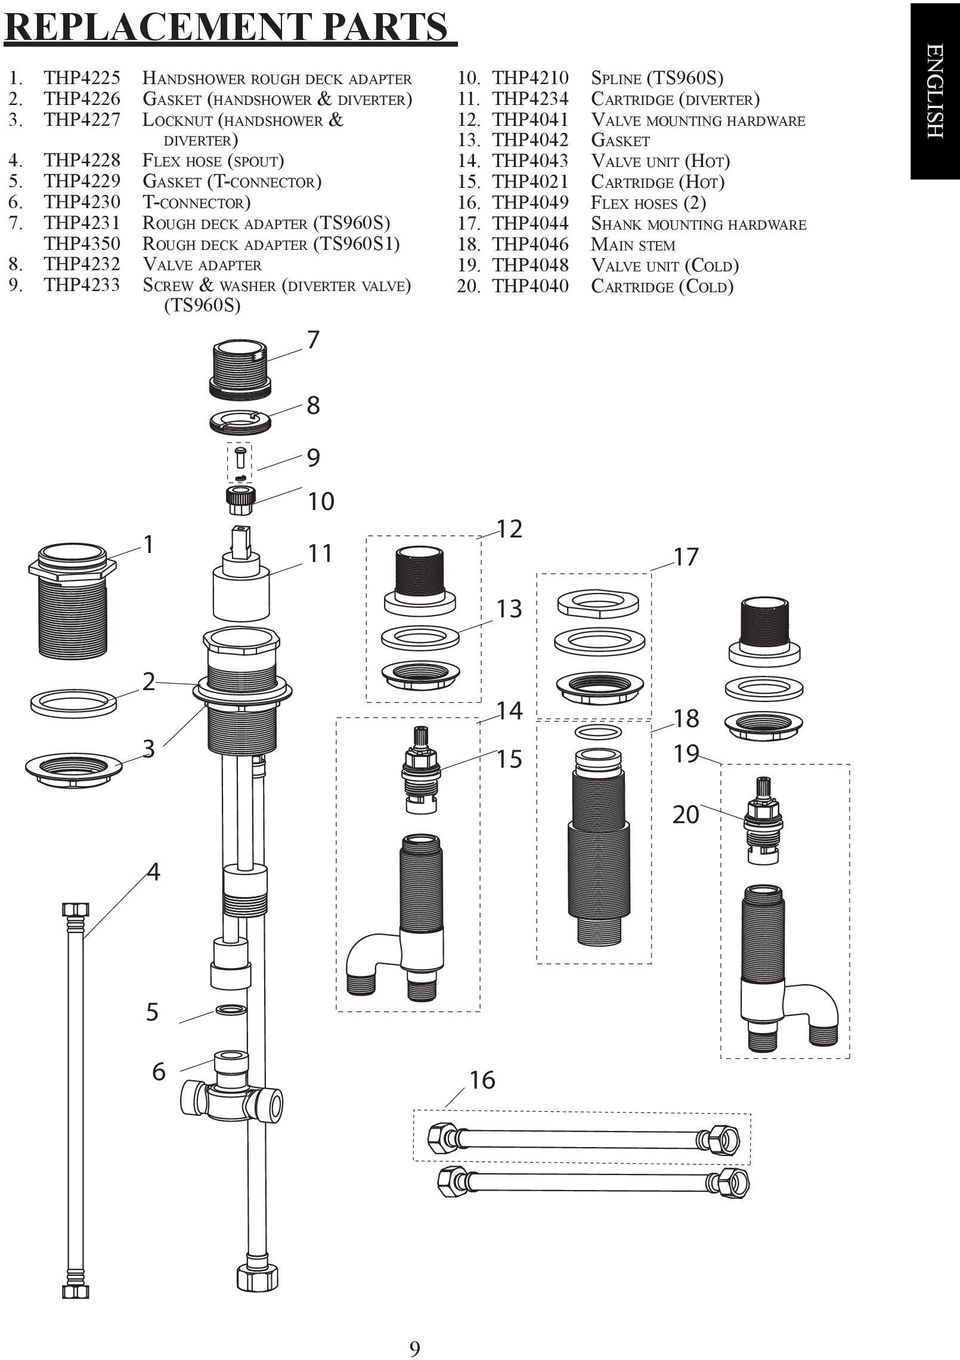 THP4233 Screw & washer (diverter valve) (TS960S) 7 10. THP4210 Spline (TS960S) 11. THP4234 Cartridge (diverter) 12. THP4041 Valve mounting hardware 13. THP4042 Gasket 14.